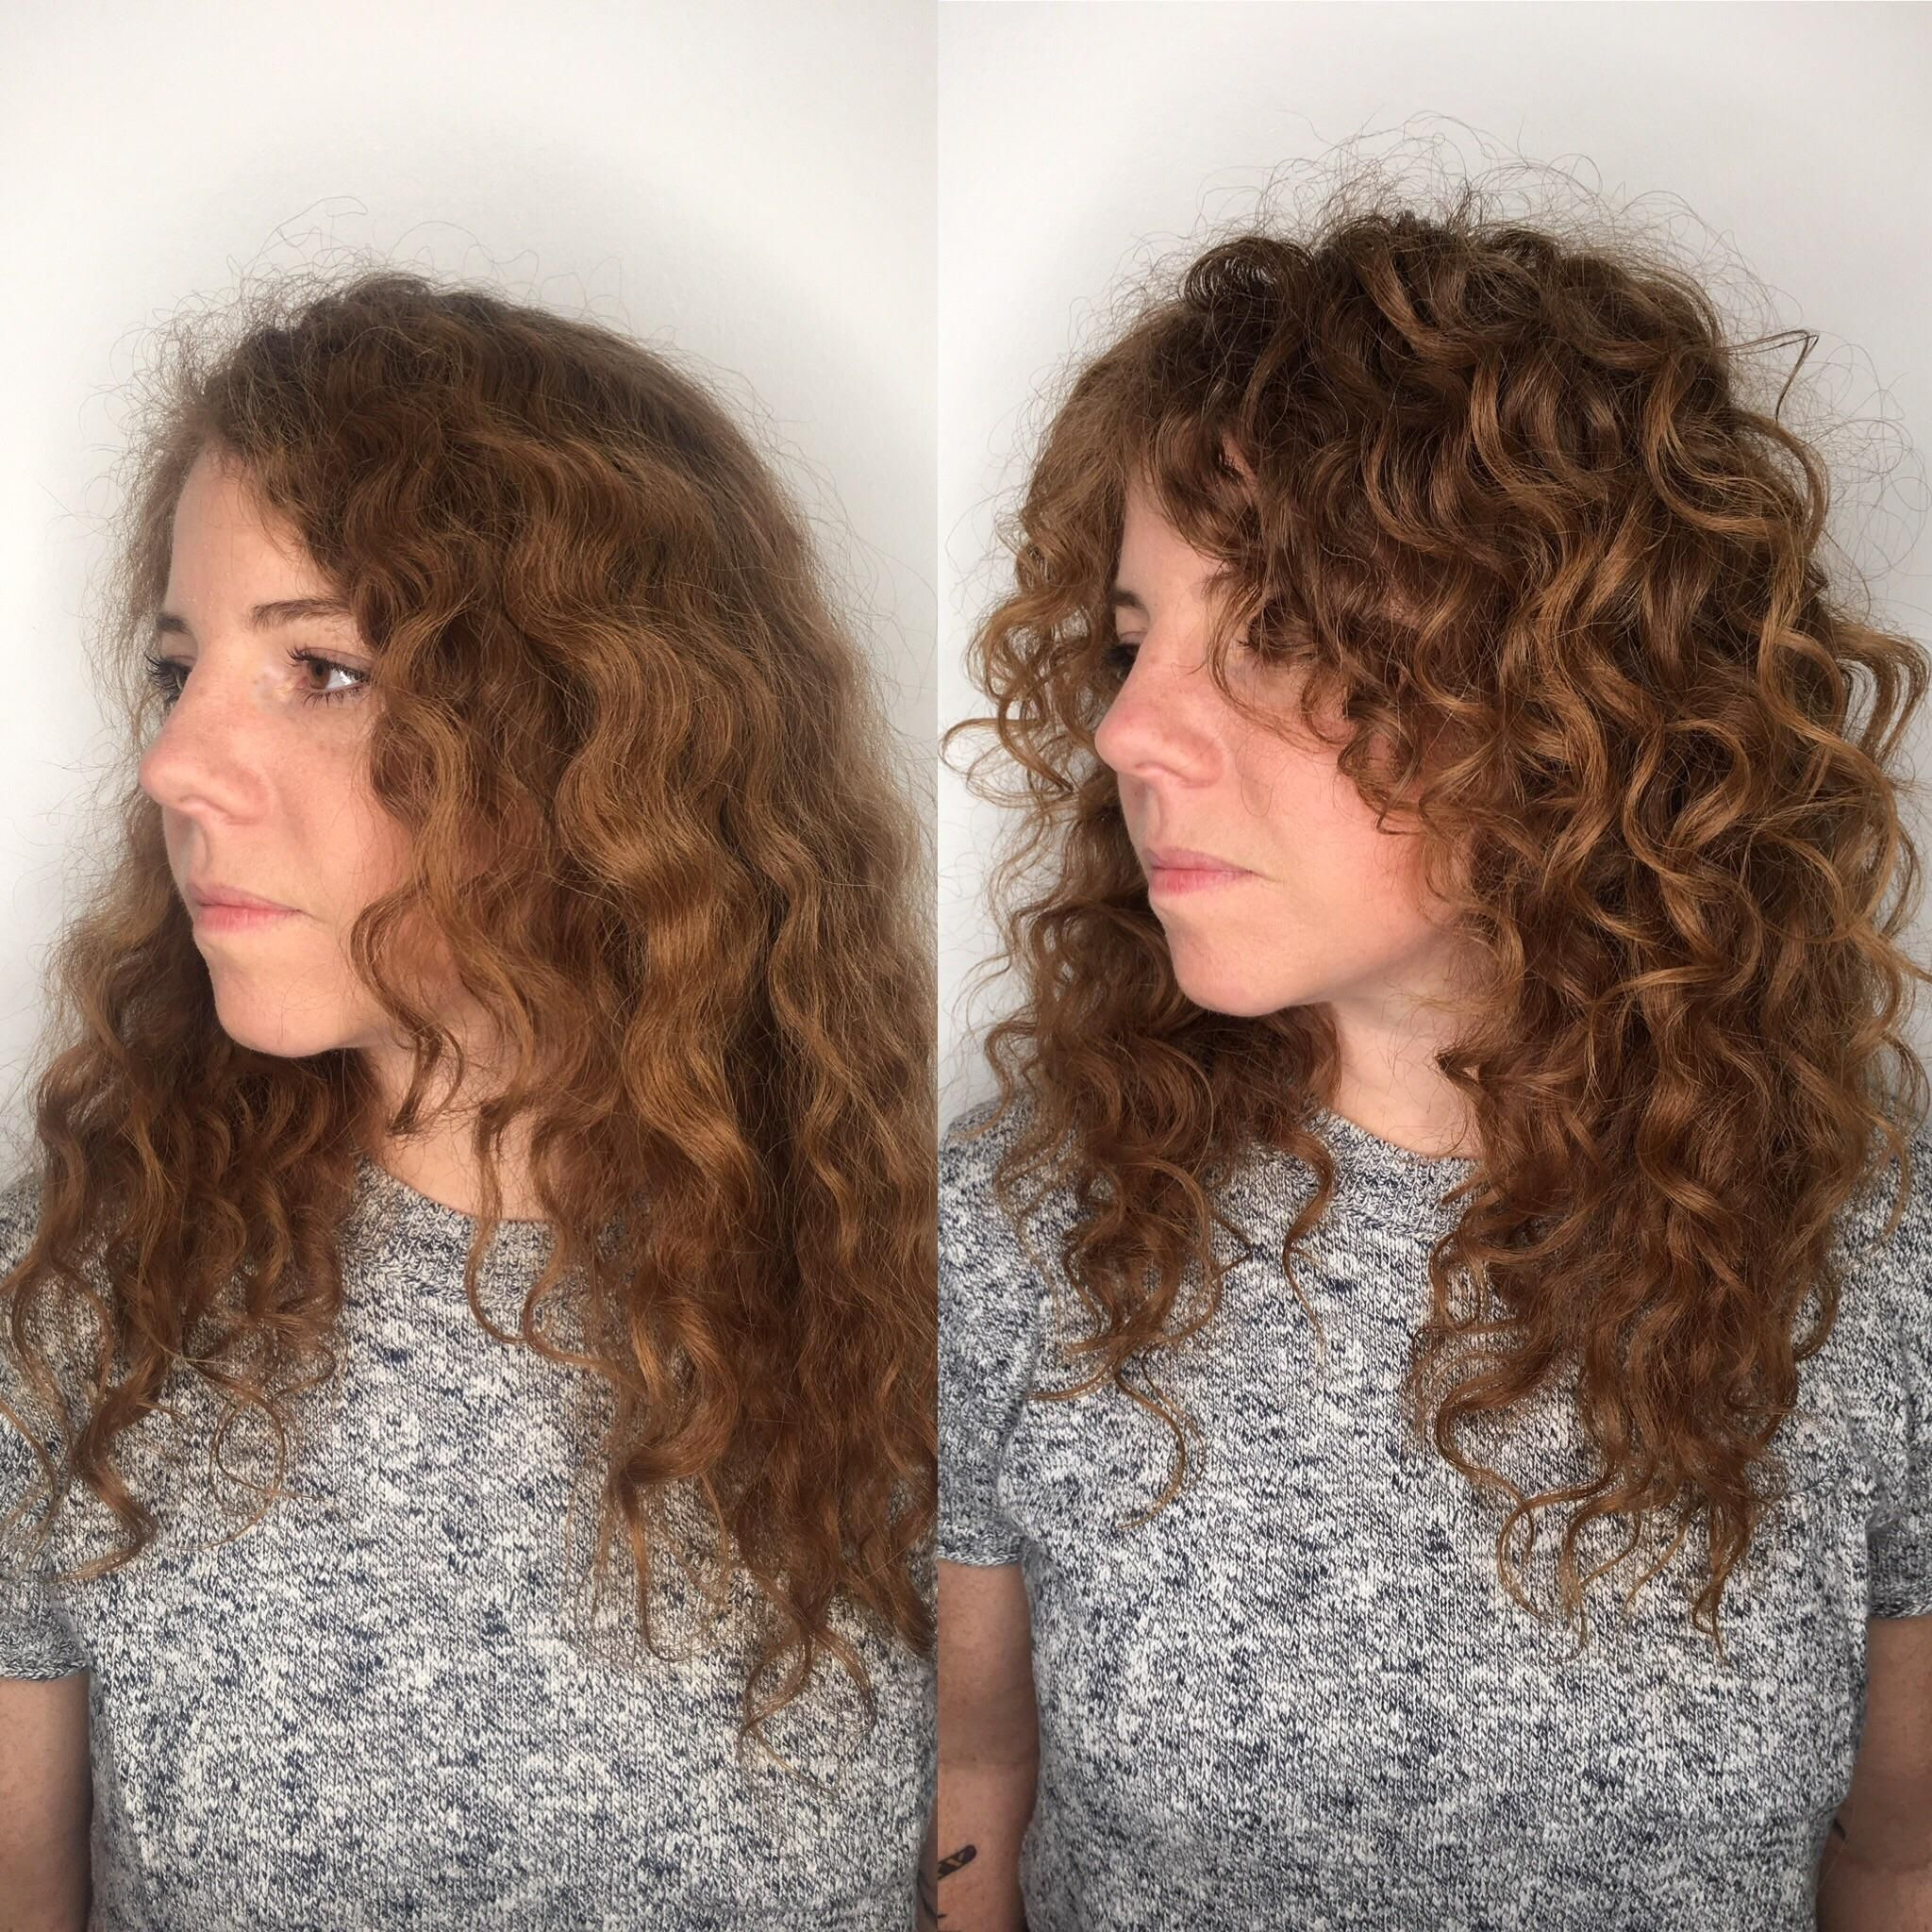 Long Curly Shag Hairstyle In 2020 Curly Hair Styles Long Hair Styles Long Curly Haircuts